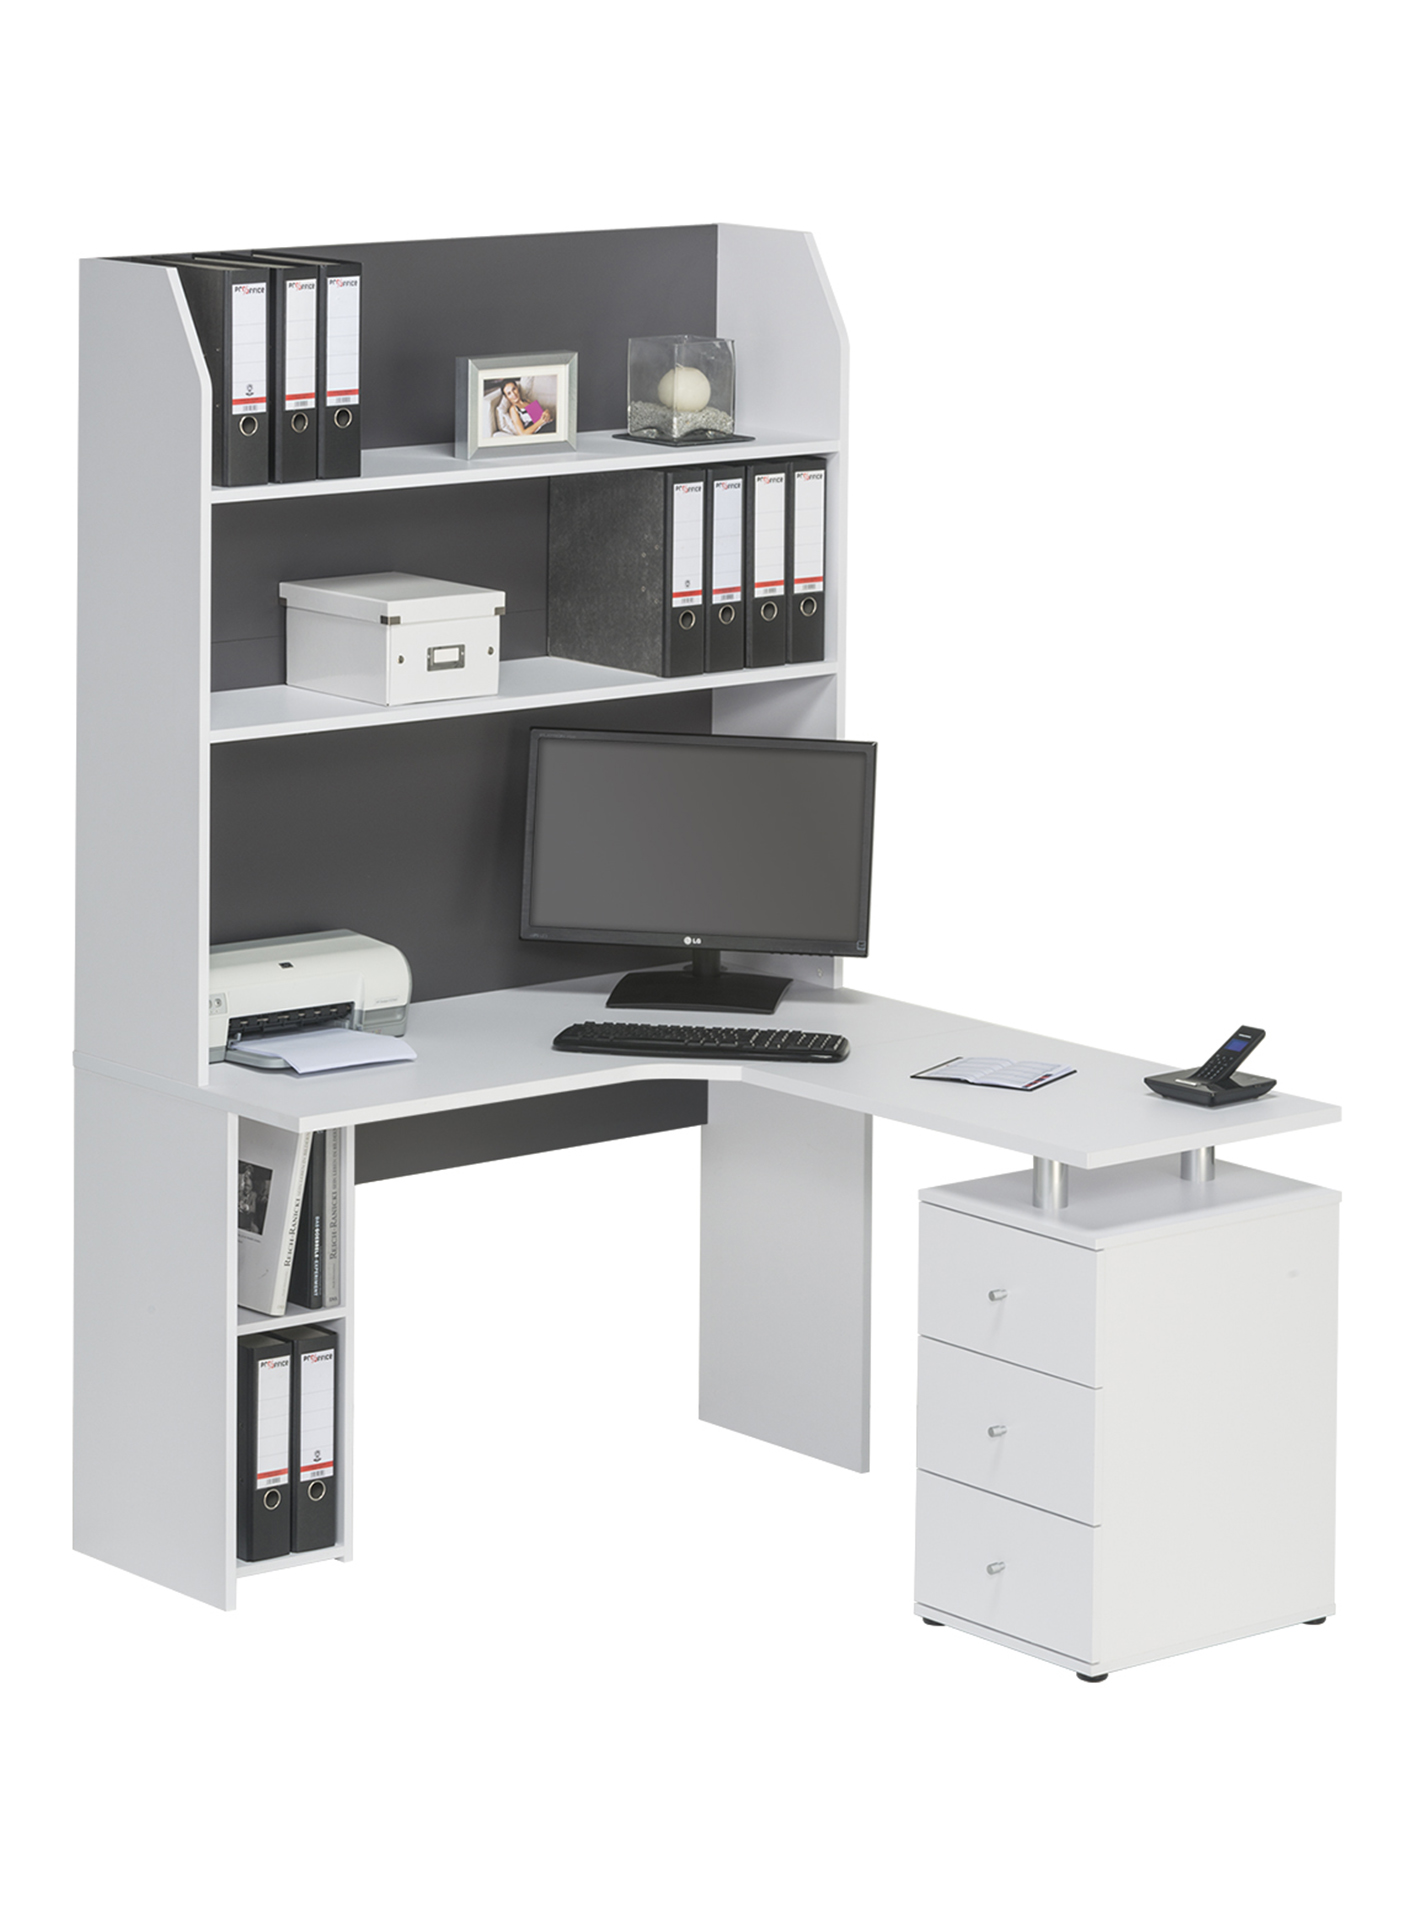 minioffice schreibtisch regal kombination mod mj133 icy. Black Bedroom Furniture Sets. Home Design Ideas